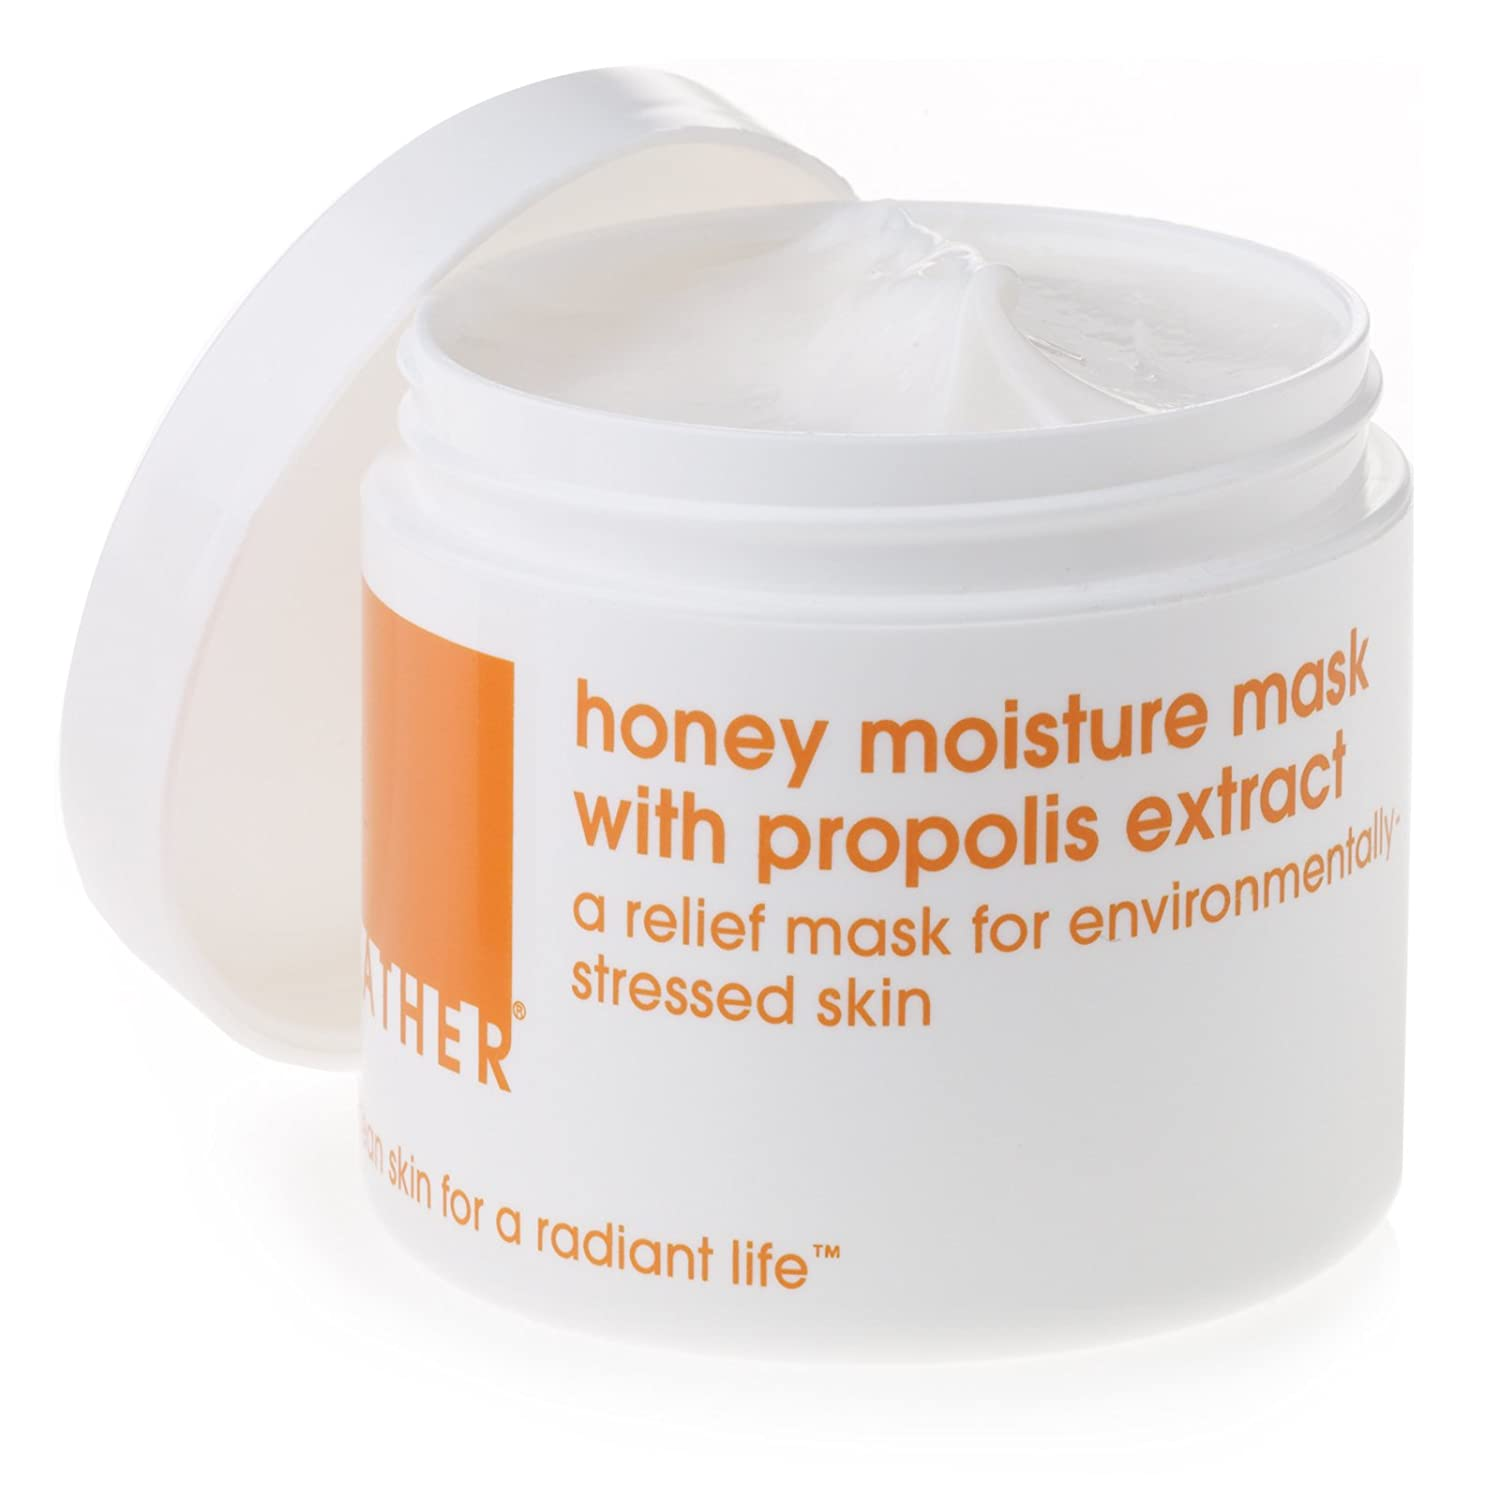 The LATHER Honey Moisture Mask with Propolis Extract travel product recommended by Colleen Johnson on Pretty Progressive.